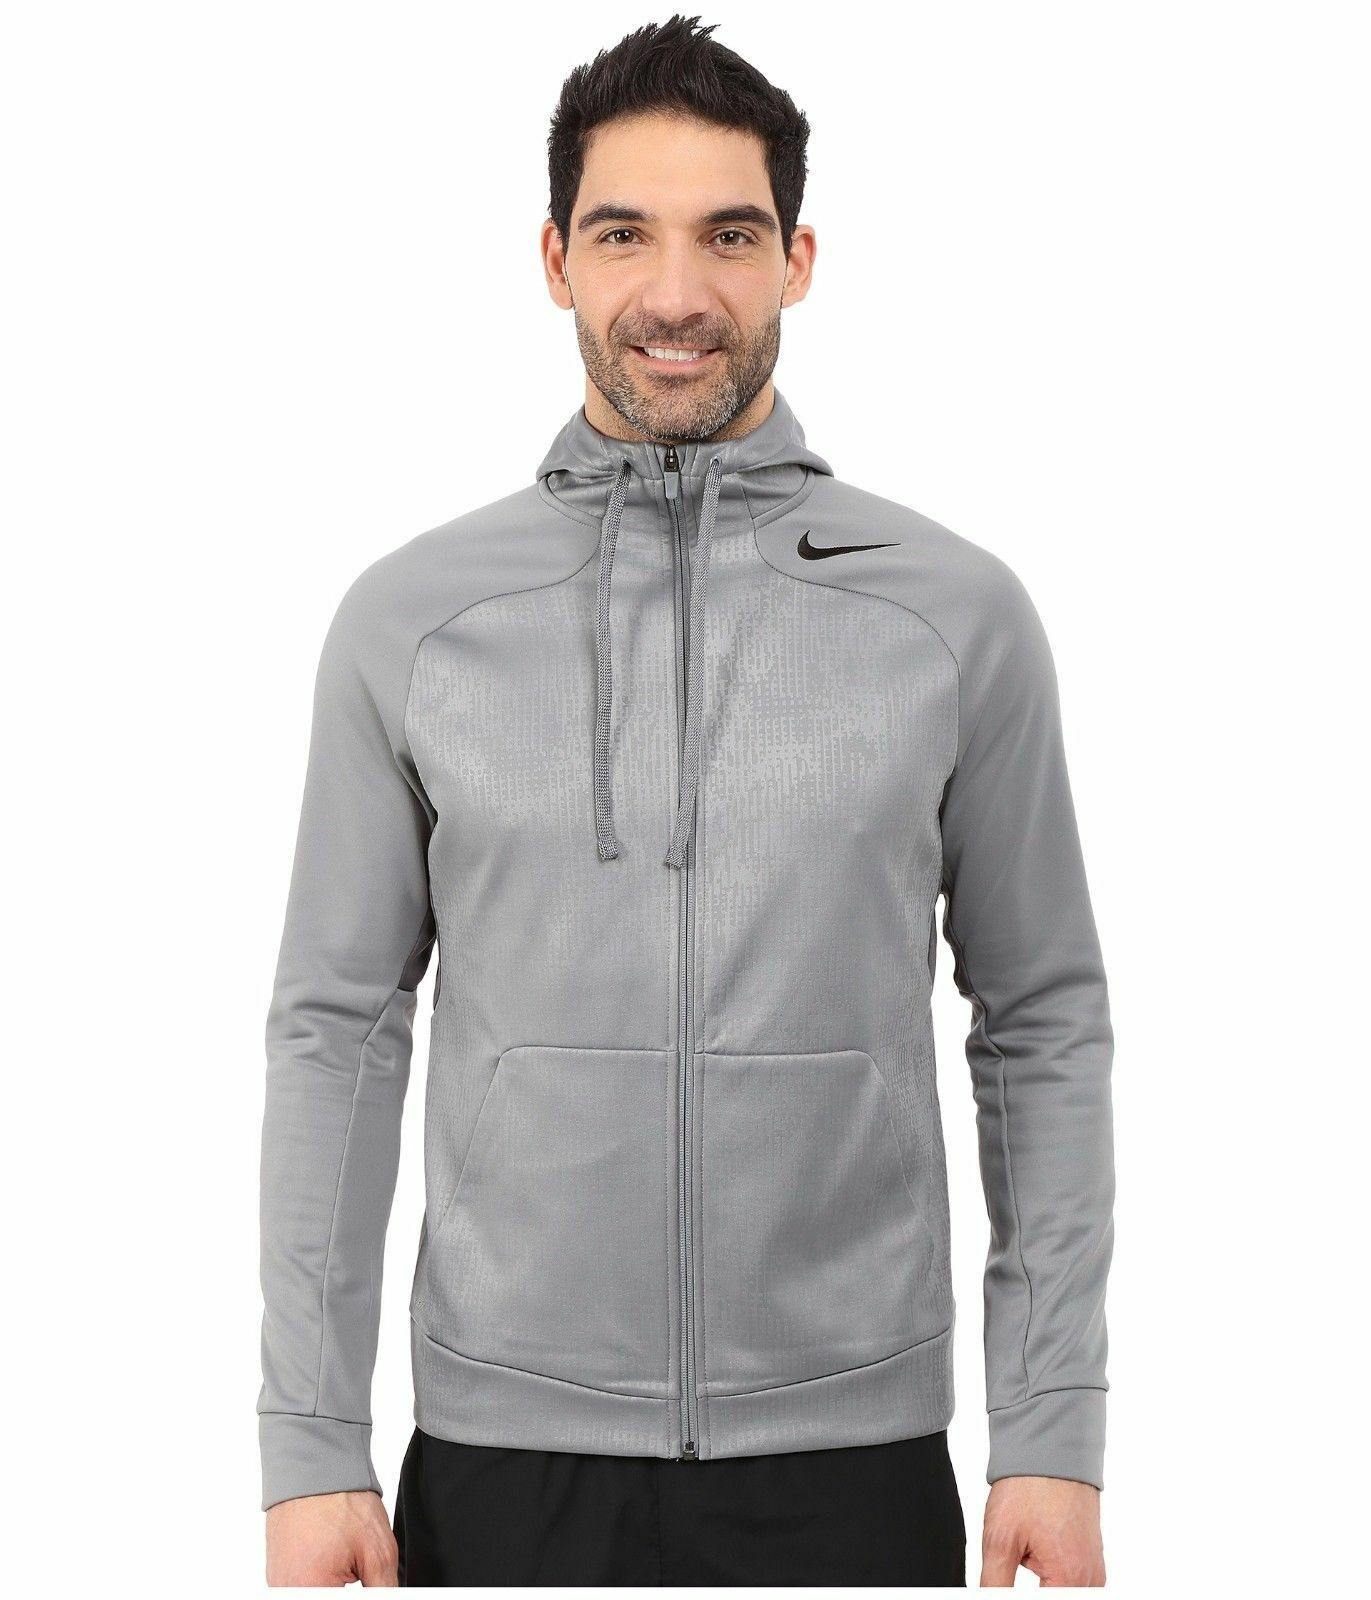 NIKE HYPERSPEED FLEECE FULL ZIP THERMA HOODIE GREY 694093-065 MEN'S SIZE XL